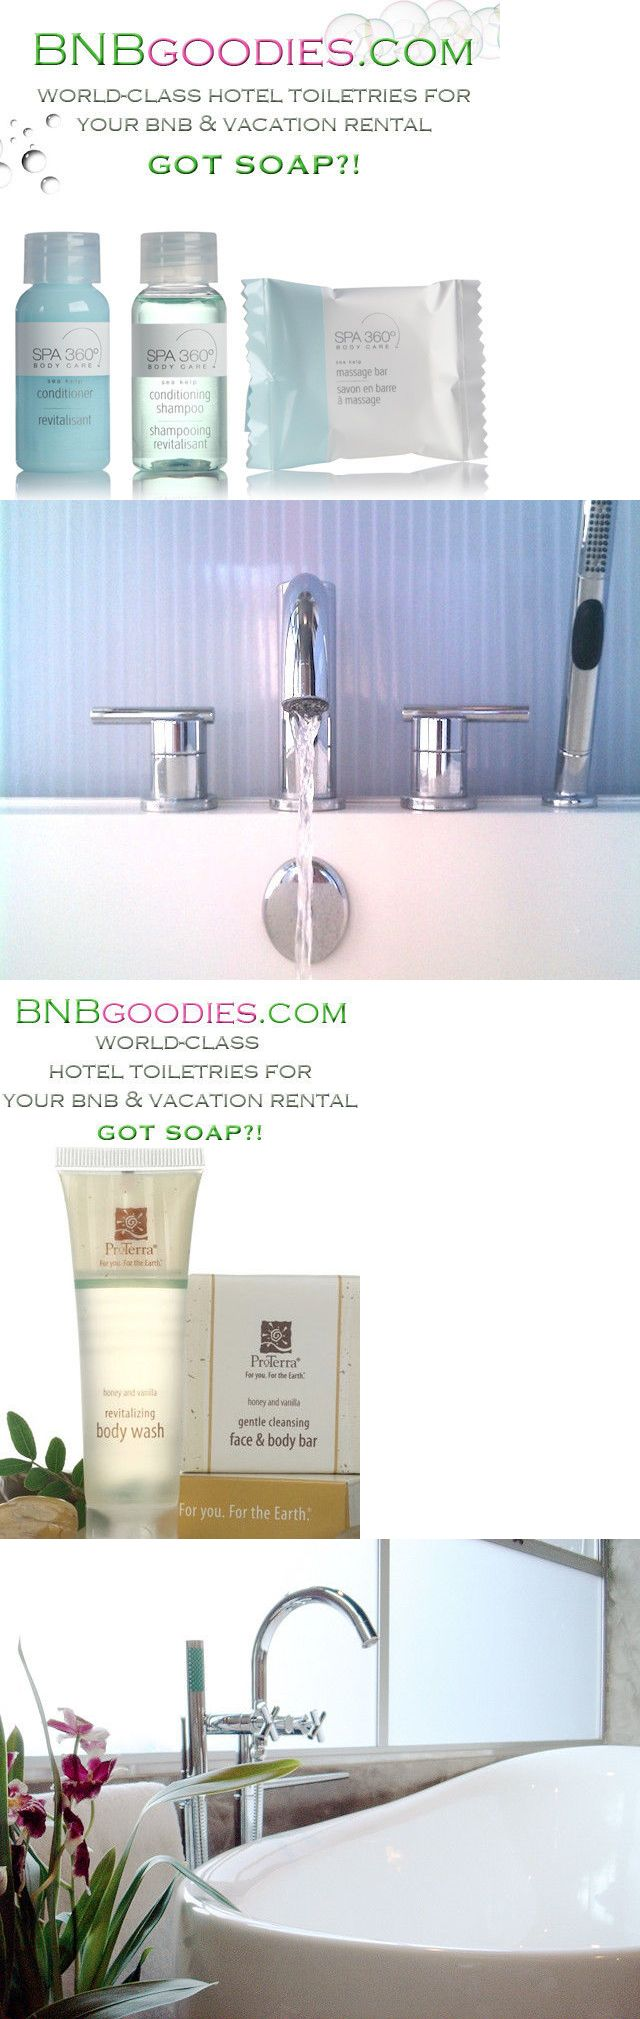 Other bath and body supplies luxury hotel amenities airbnb homeaway vrbo bnb vacation rentals lot